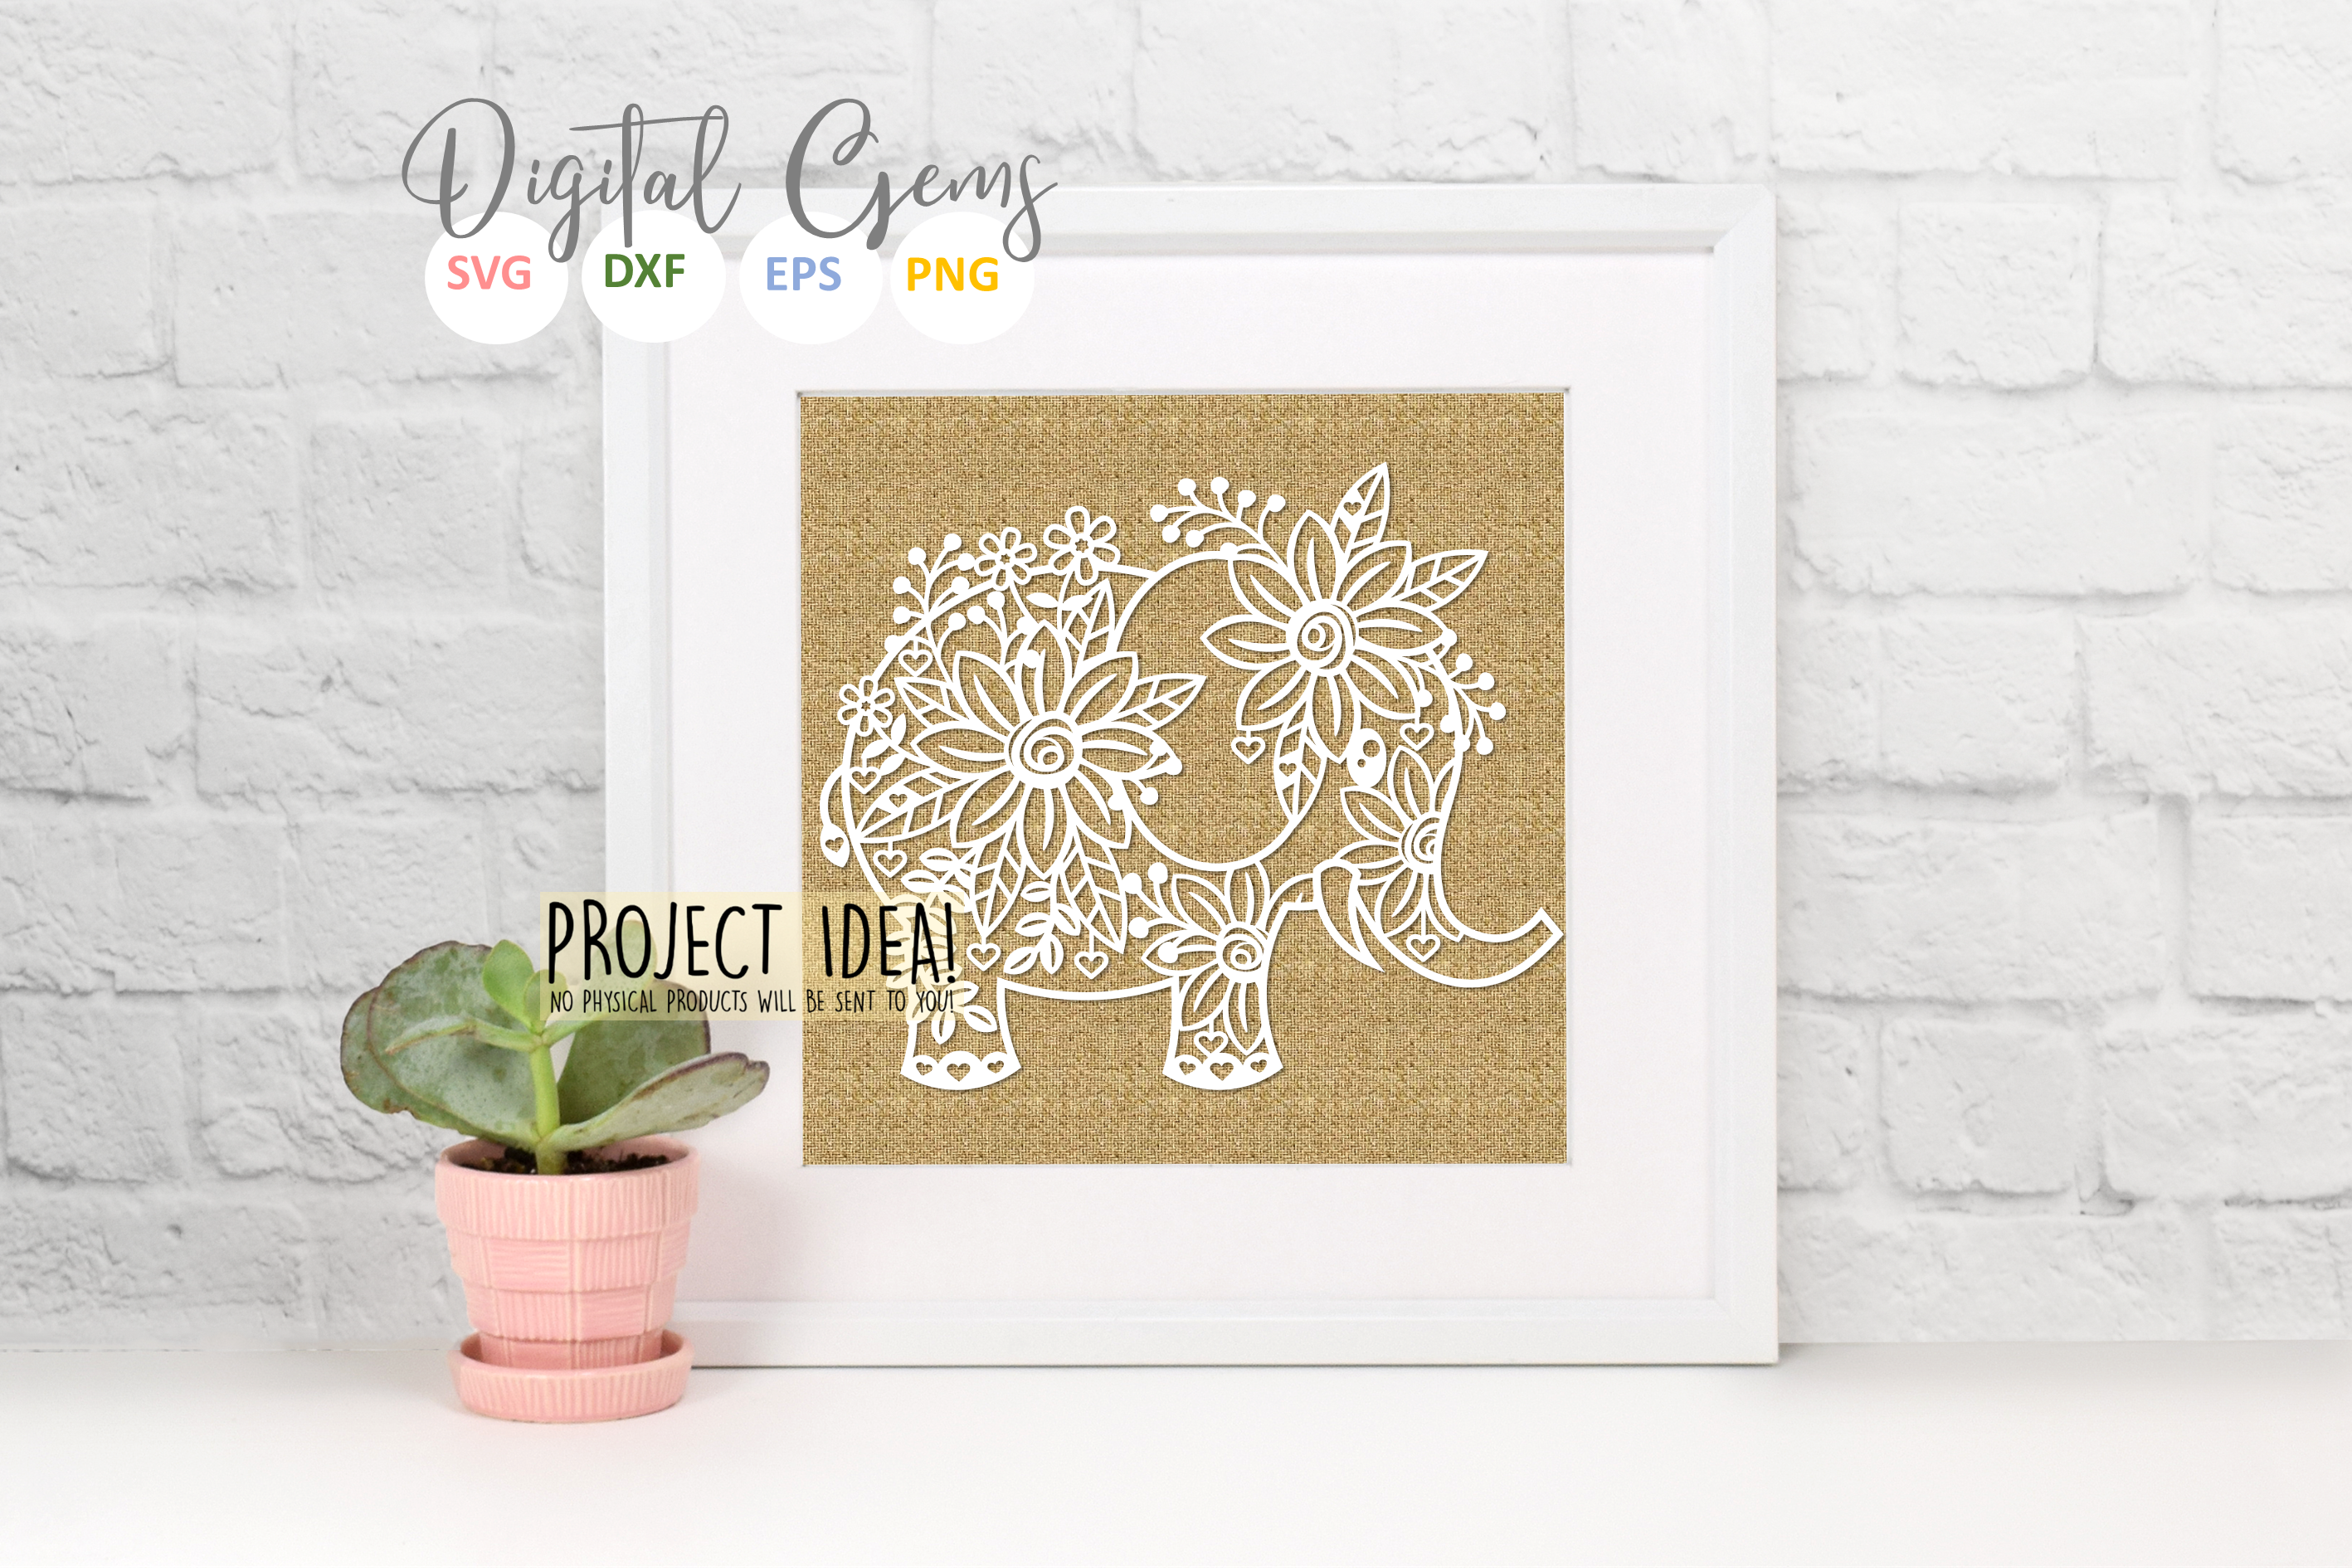 Elephant paper cut design SVG / DXF / EPS / PNG files example image 7